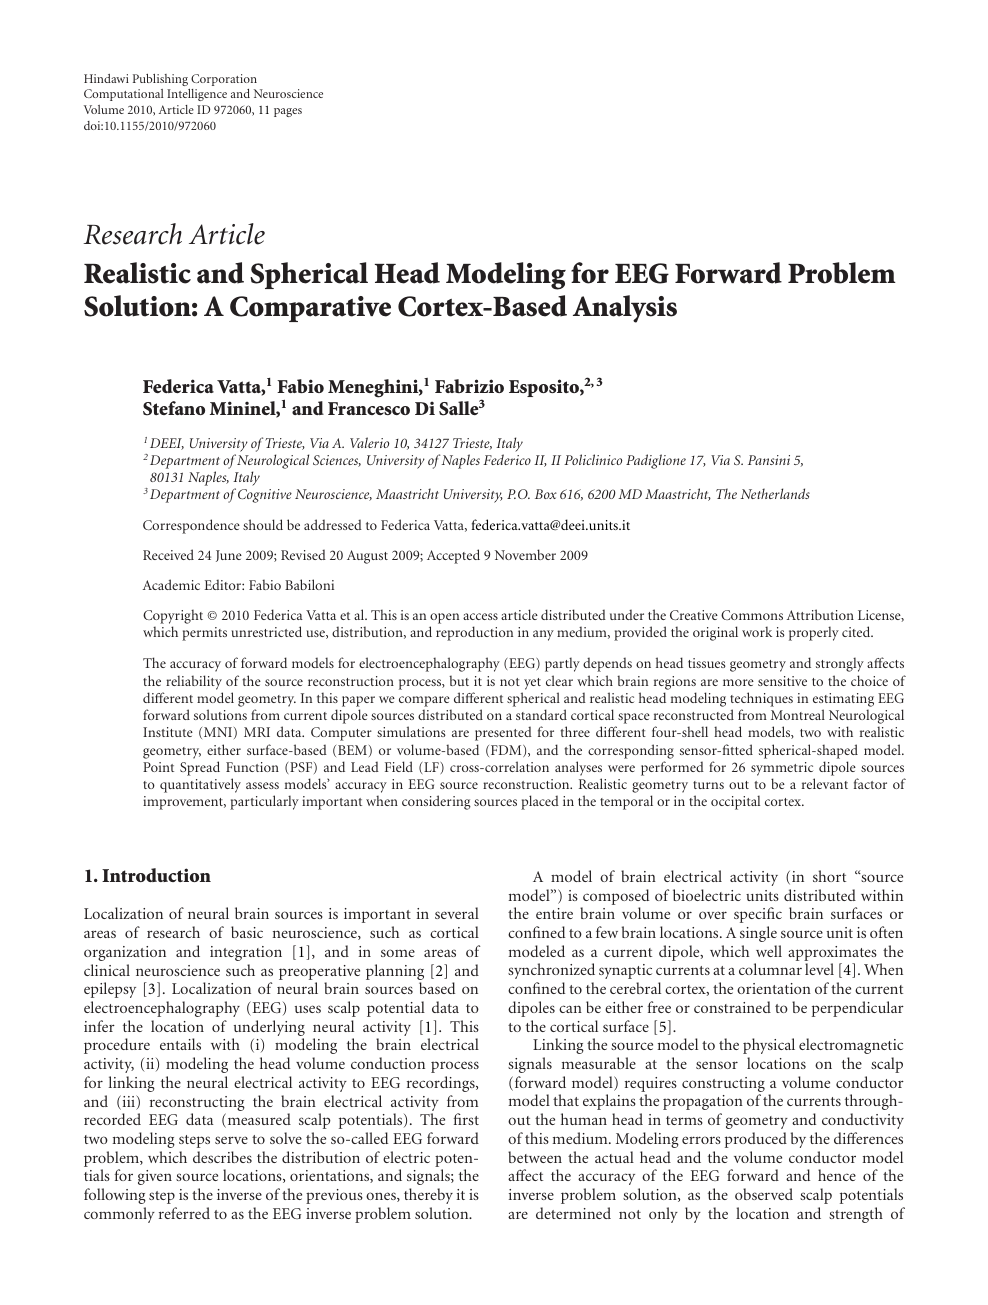 Realistic and Spherical Head Modeling for EEG Forward